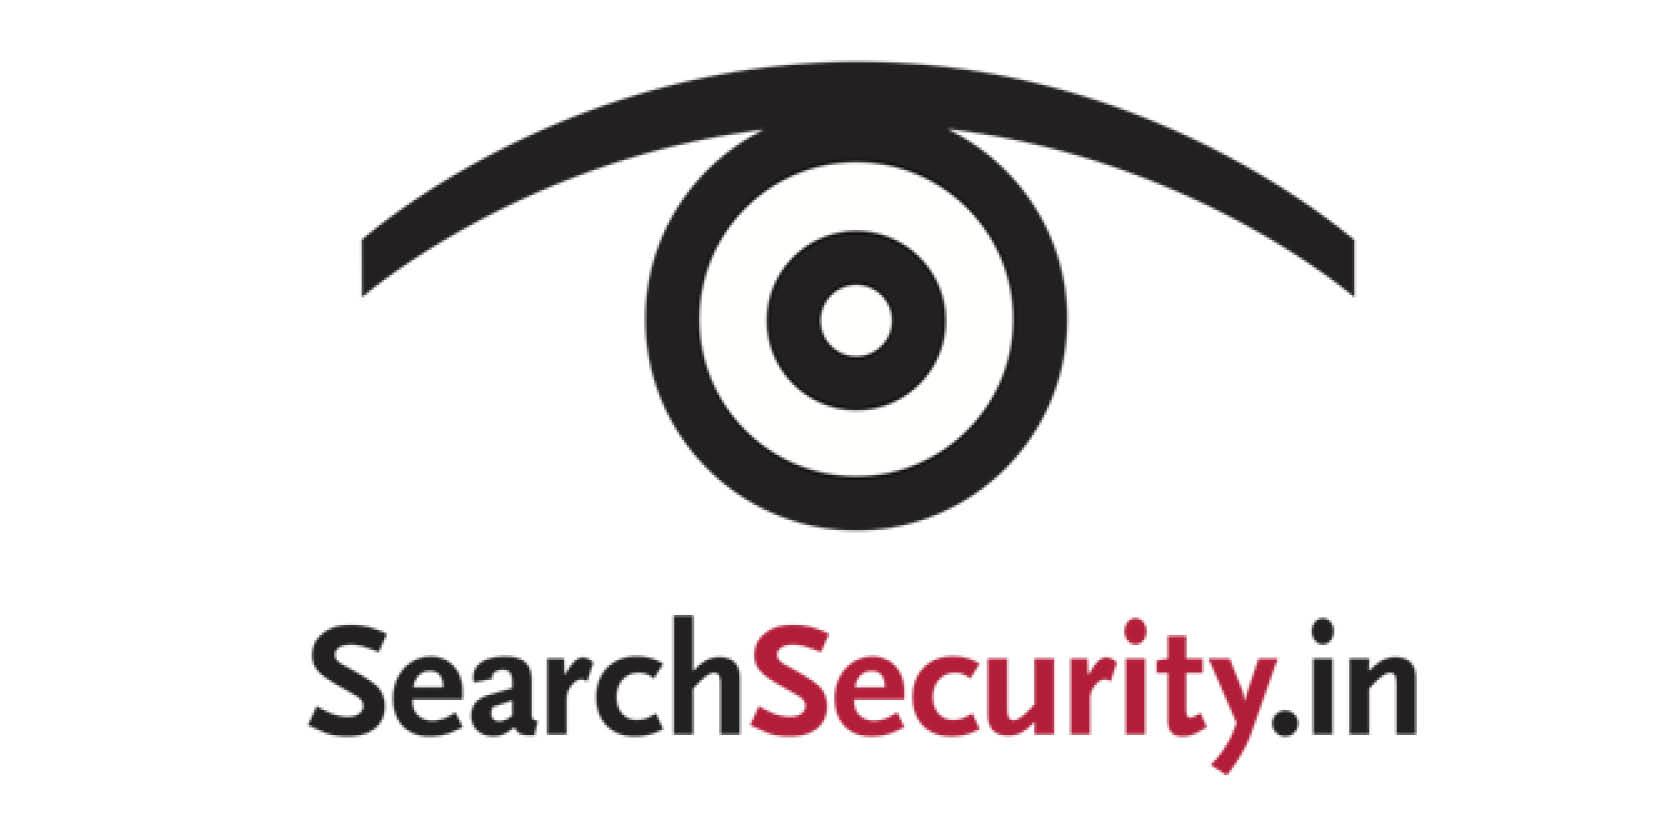 SearchSecurity: Mobile security strategy matures with BYOD